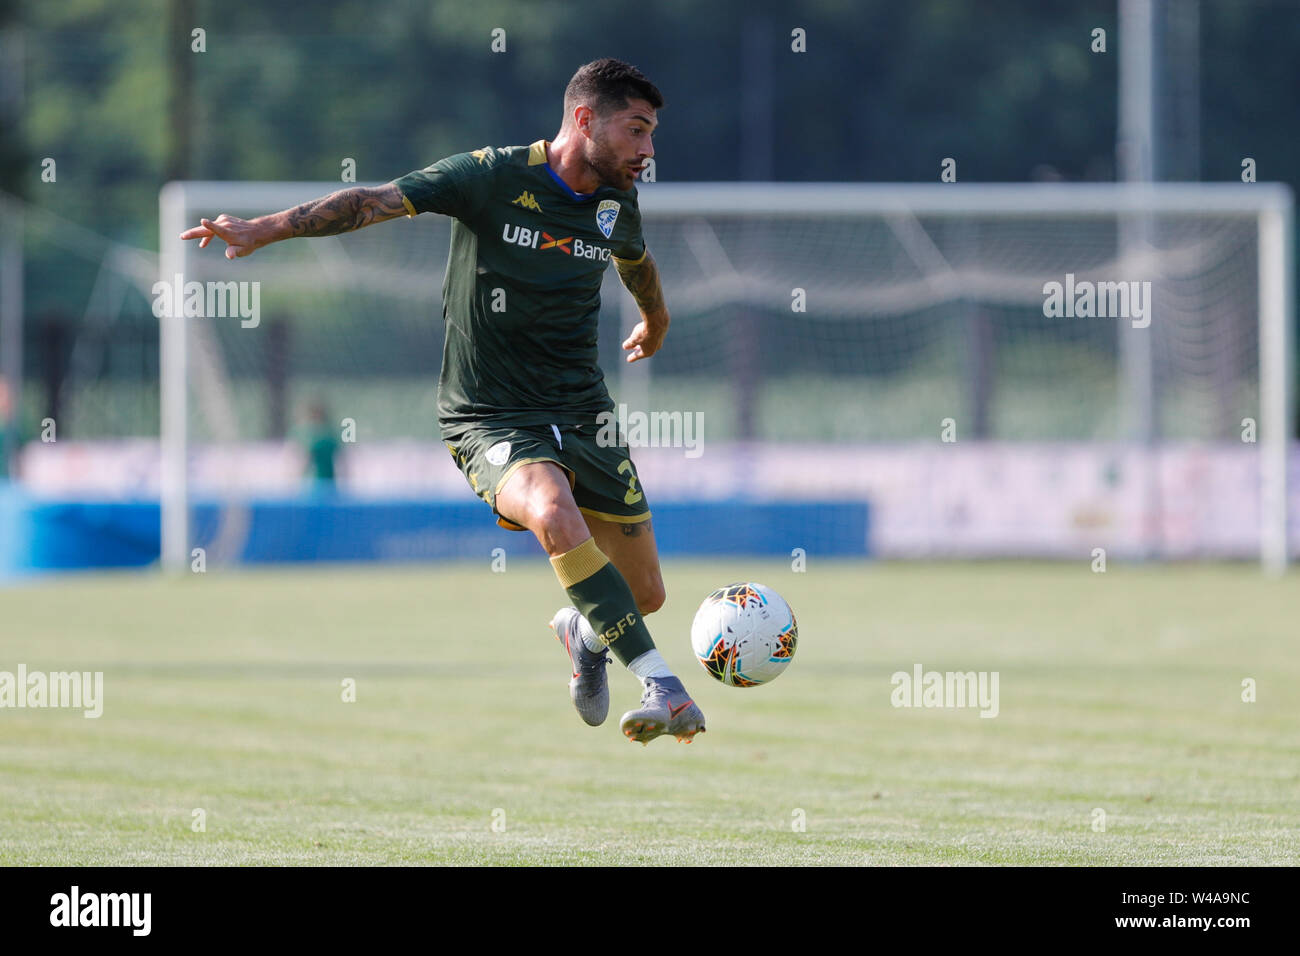 Darfo Boario, Italia. 21st July, 2019. Foto Stefano Nicoli/LaPresse21 luglio 2019 Darfo Boario (Bs), Italia sport calcio Amichevole Brescia Darfo Pre Campionato di calcio Serie A 2019/2020 - Nella foto: Stefano Sabelli Photo Stefano Nicoli/LaPresse July 20, 2019 Darfo Boario (Bs), Italy sport soccer Friendly match Brescia Darfo League A TIM 2019/2020 - In the pic:Stefano Sabelli Credit: LaPresse/Alamy Live News - Stock Image